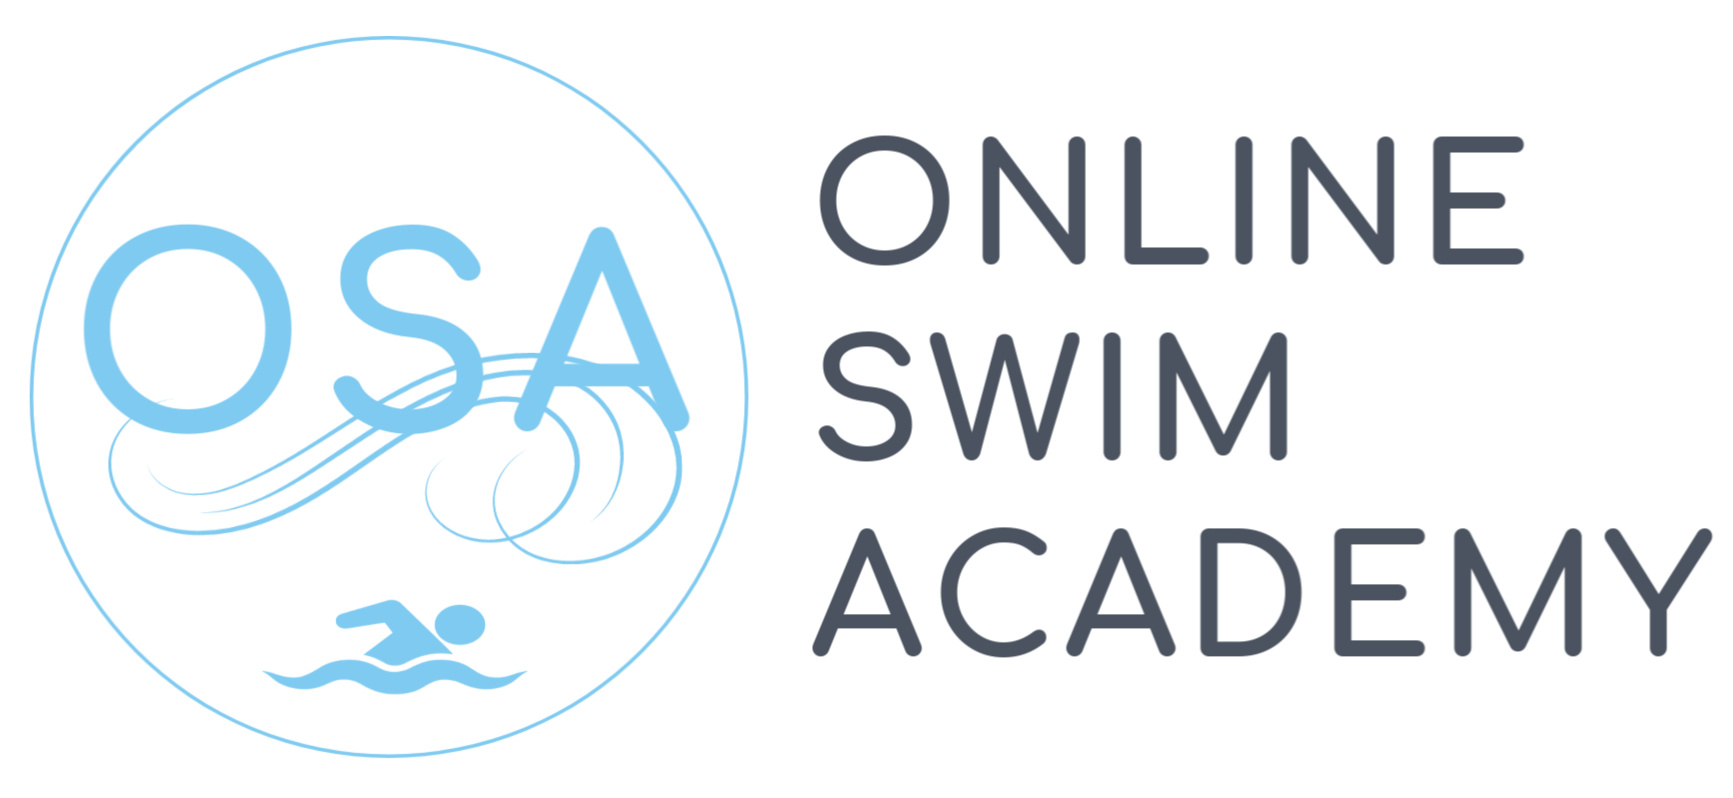 Tessa Rhodes online swim teacher training